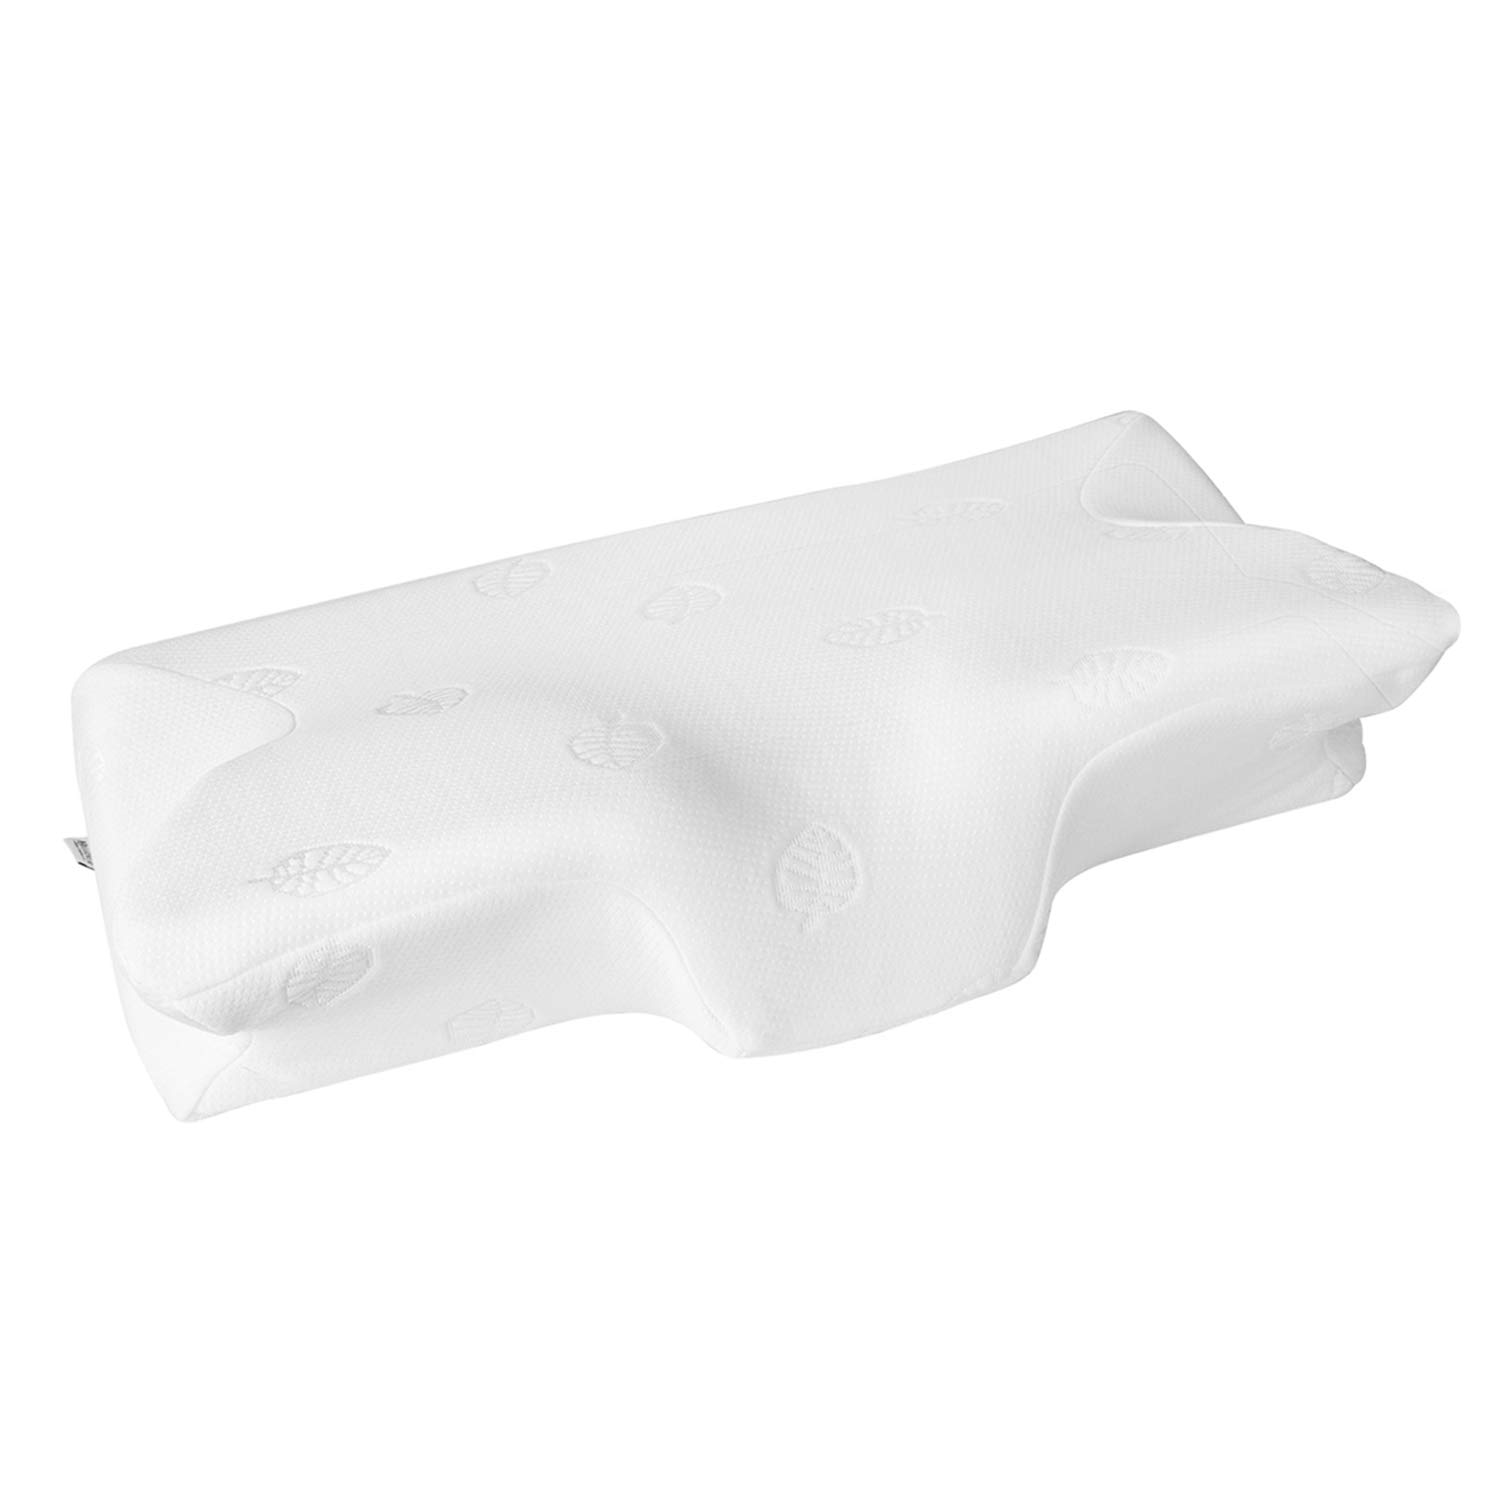 MARNUR Cervical Pillow Contour Memory Foam Orthopedic Pillow for Neck Pain Sleeping for Side Sleeper Back Sleeper Stomach Sleeper+Pillowcase